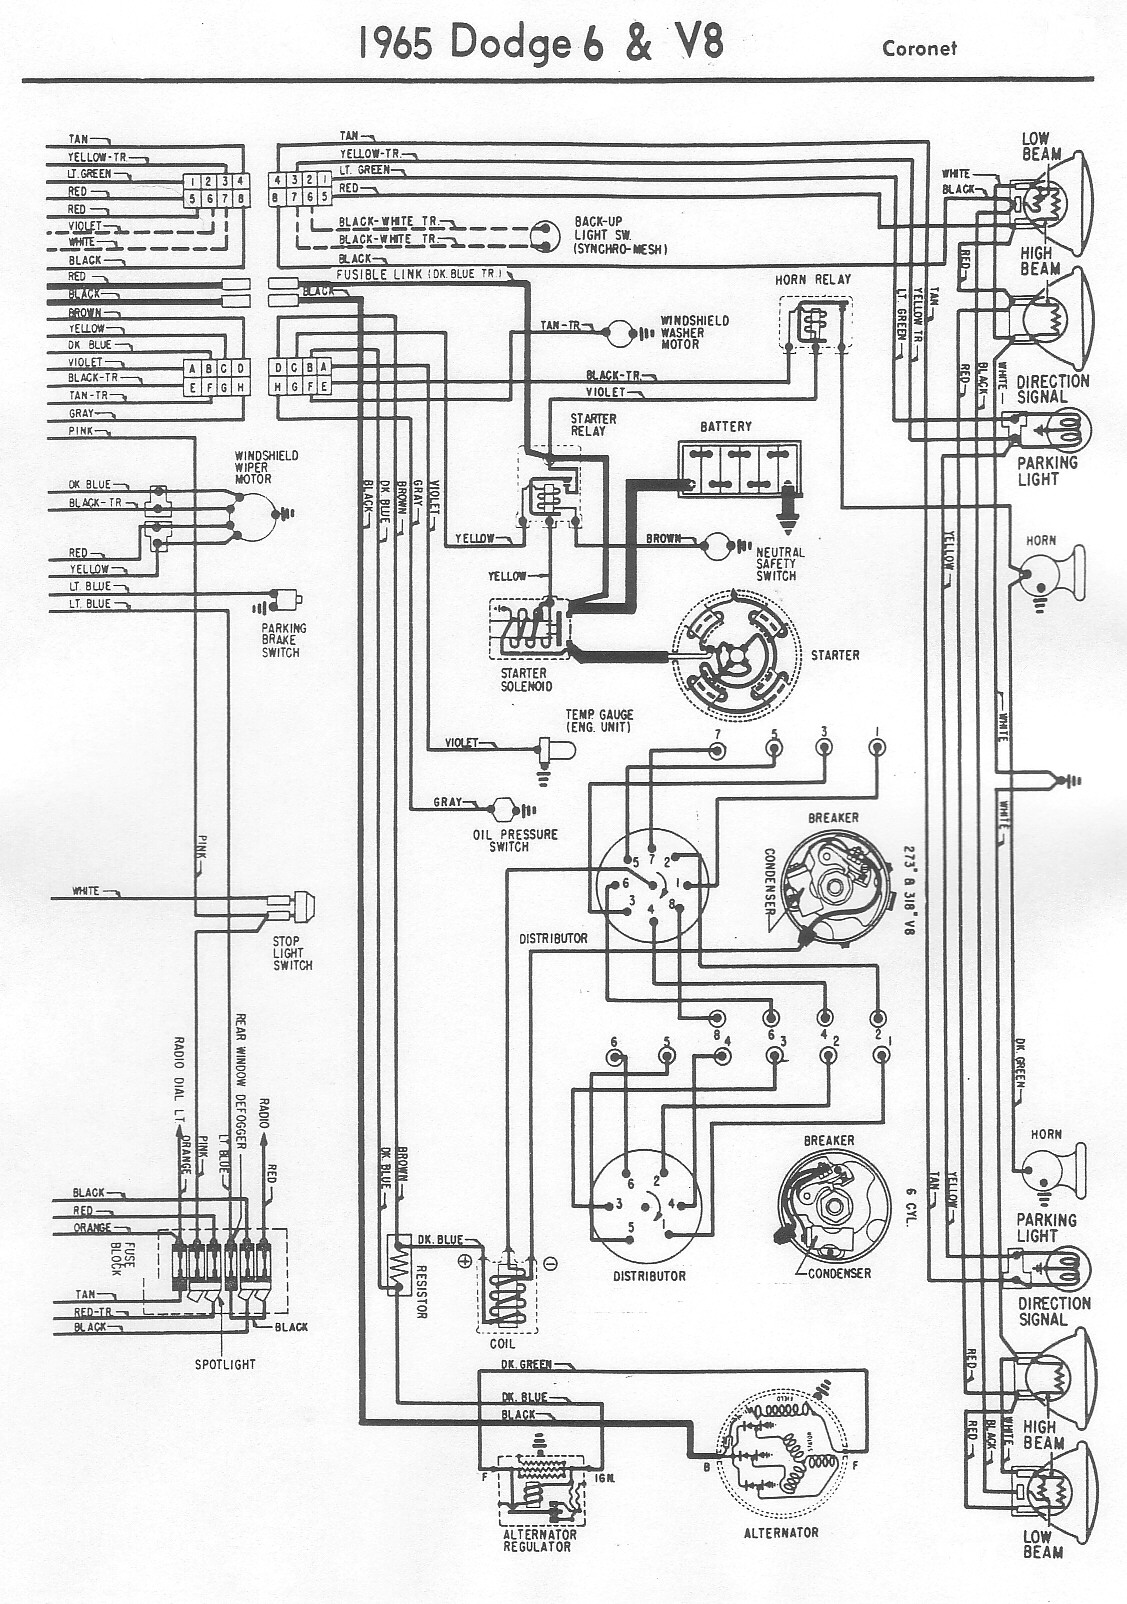 hight resolution of 1965 dodge wiring diagram wiring diagram img 1965 dodge coronet wiring diagram